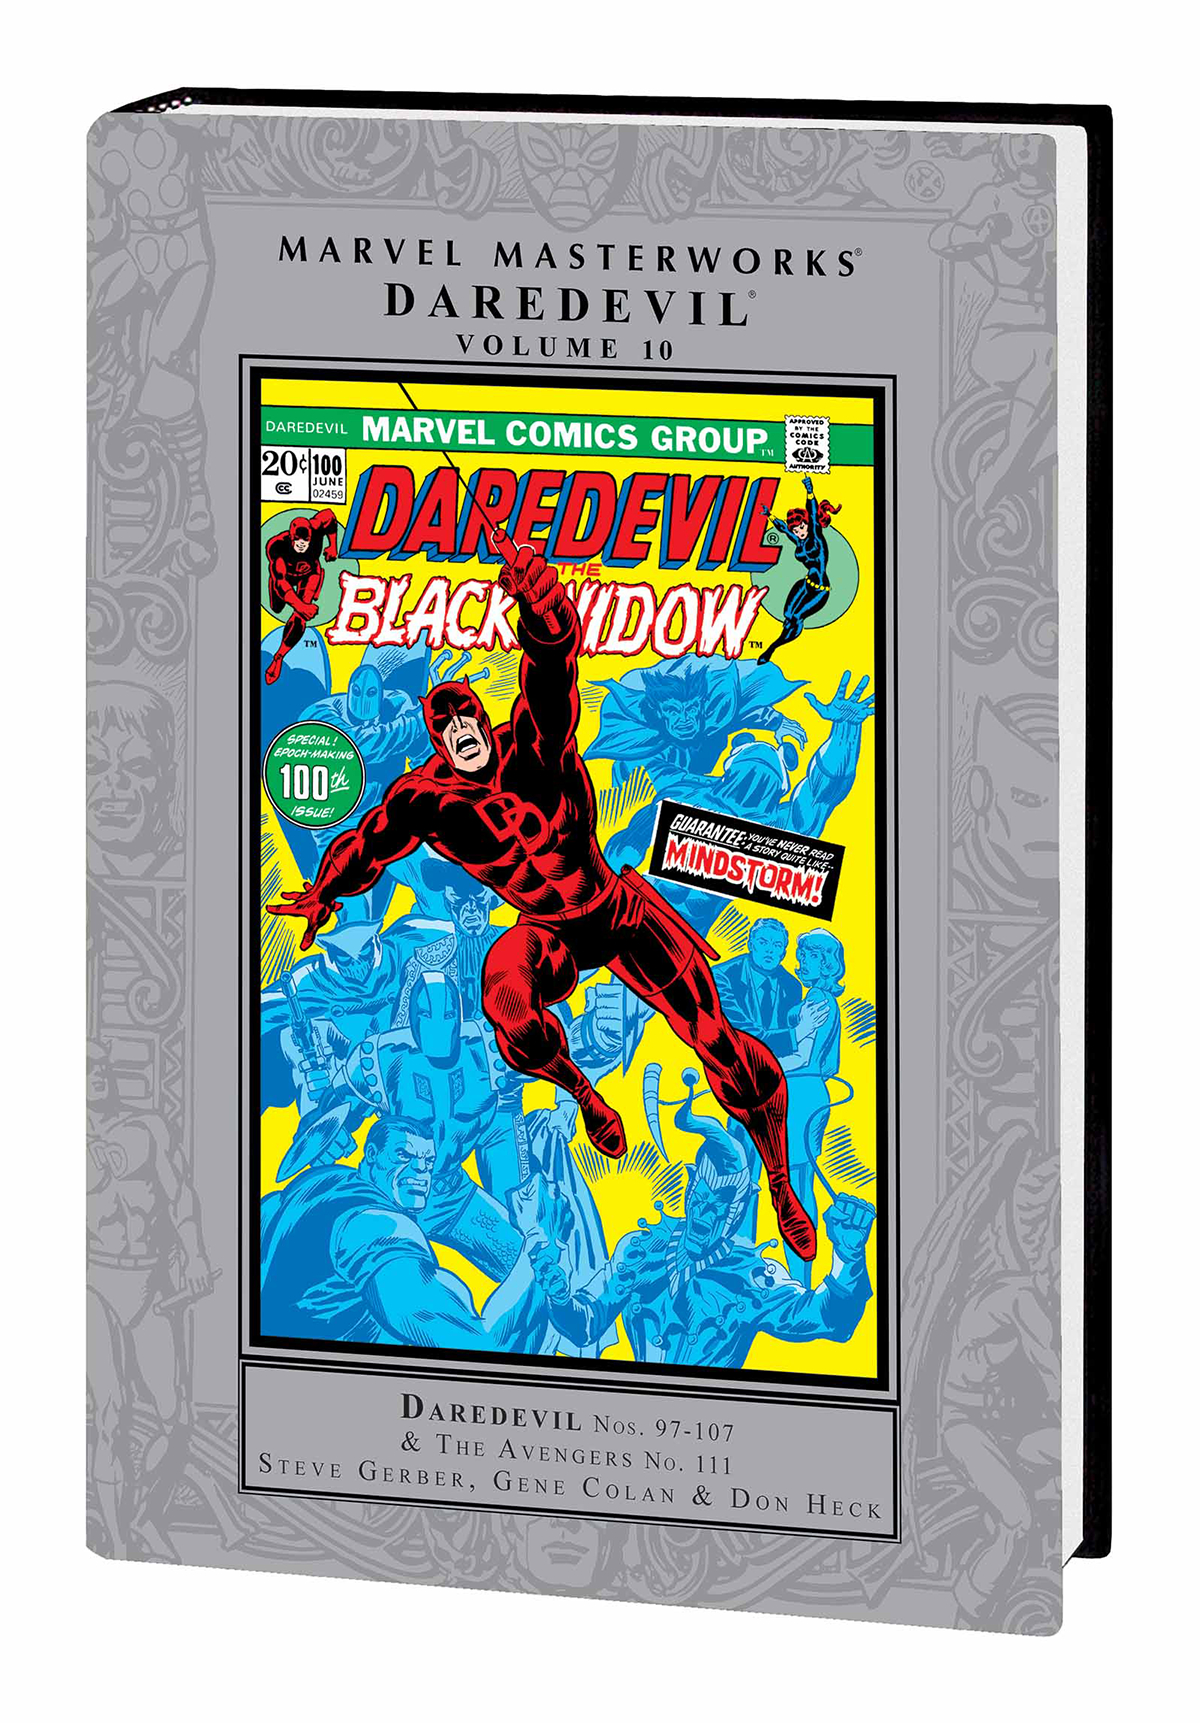 MMW DAREDEVIL HC VOL 10